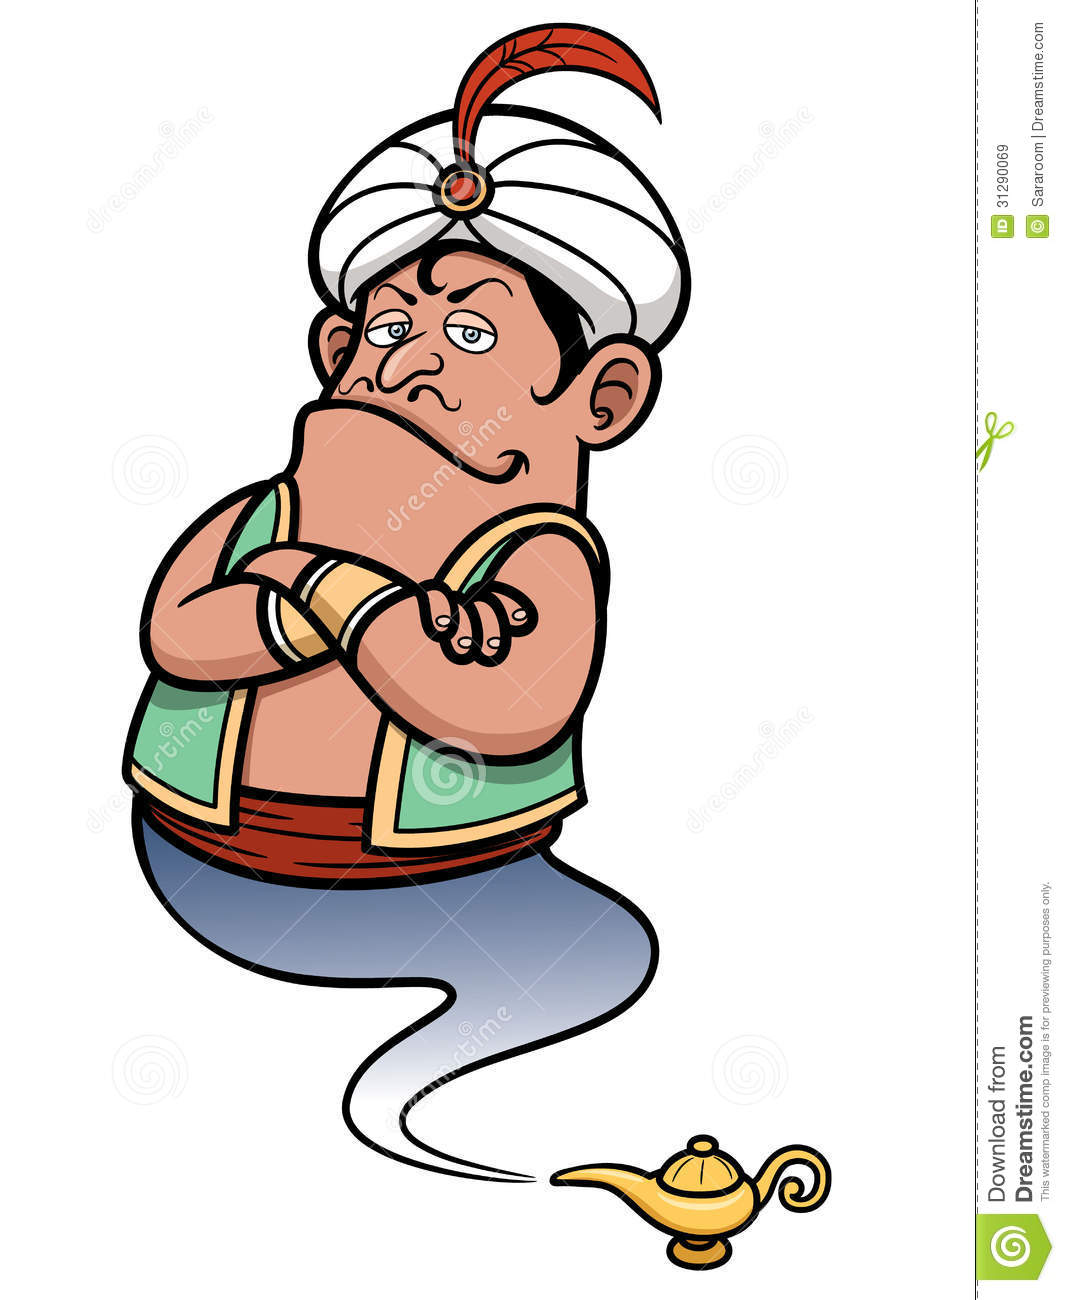 Genie lamp stock photos pictures royalty free genie - Royalty Free Stock Photo Coming Genie Illustration Lamp